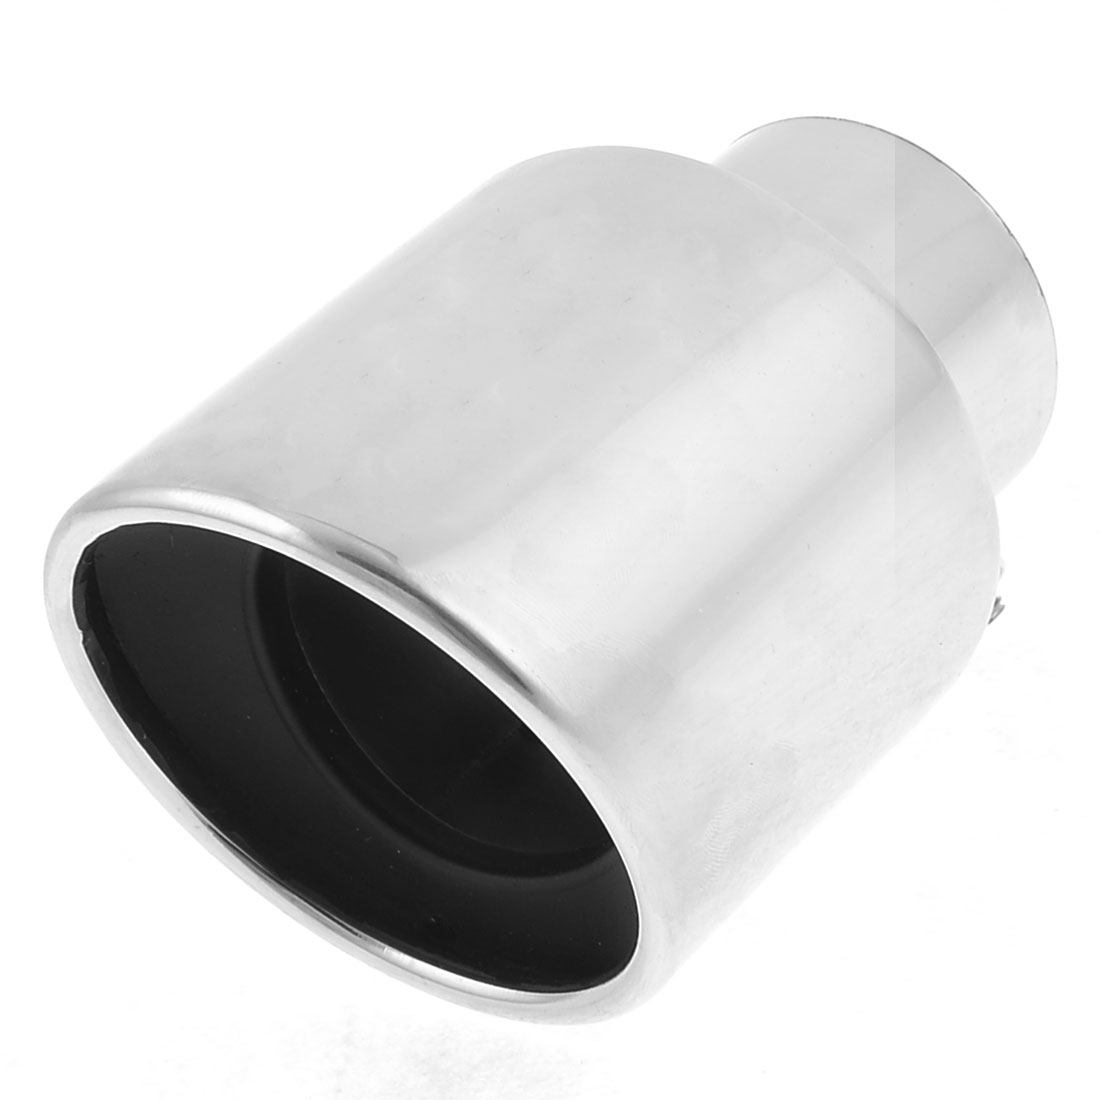 "Round 2.3"" Inlet Dia Stainless Steel Exhaust Muffler Tip for Changan Mazda 3"